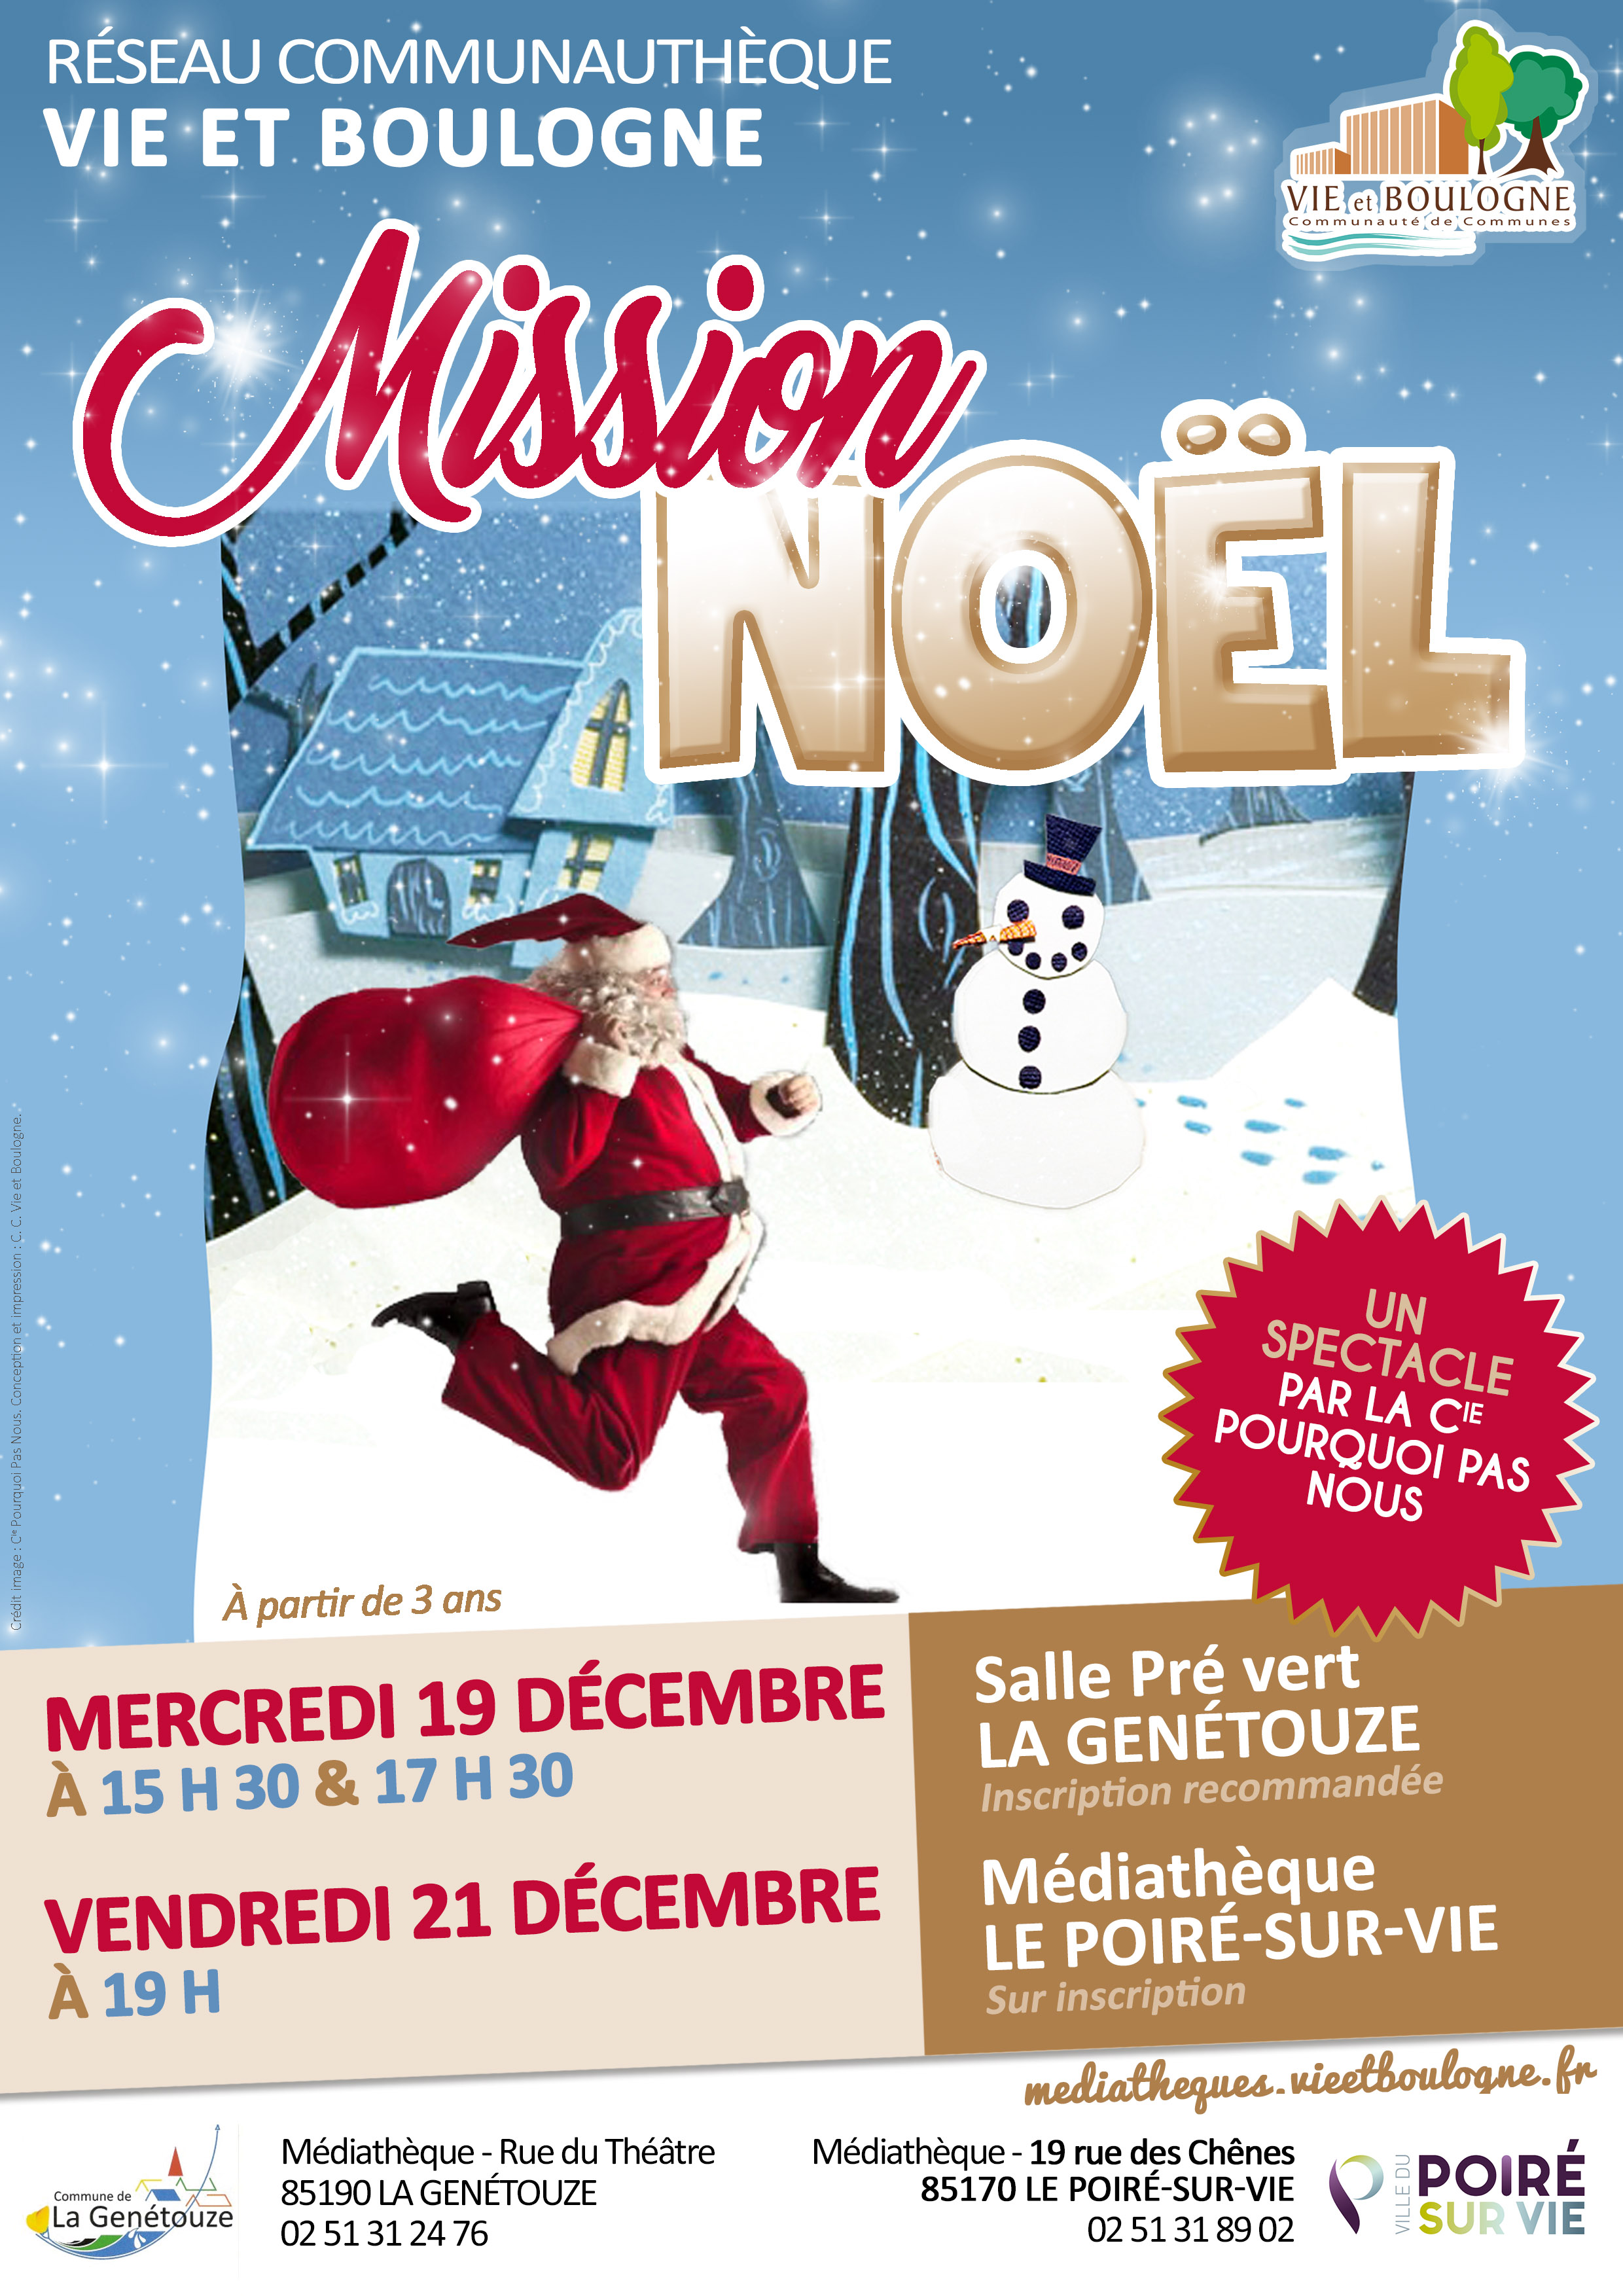 MISSION NOEL 3+ GEN PSV DEC 2018